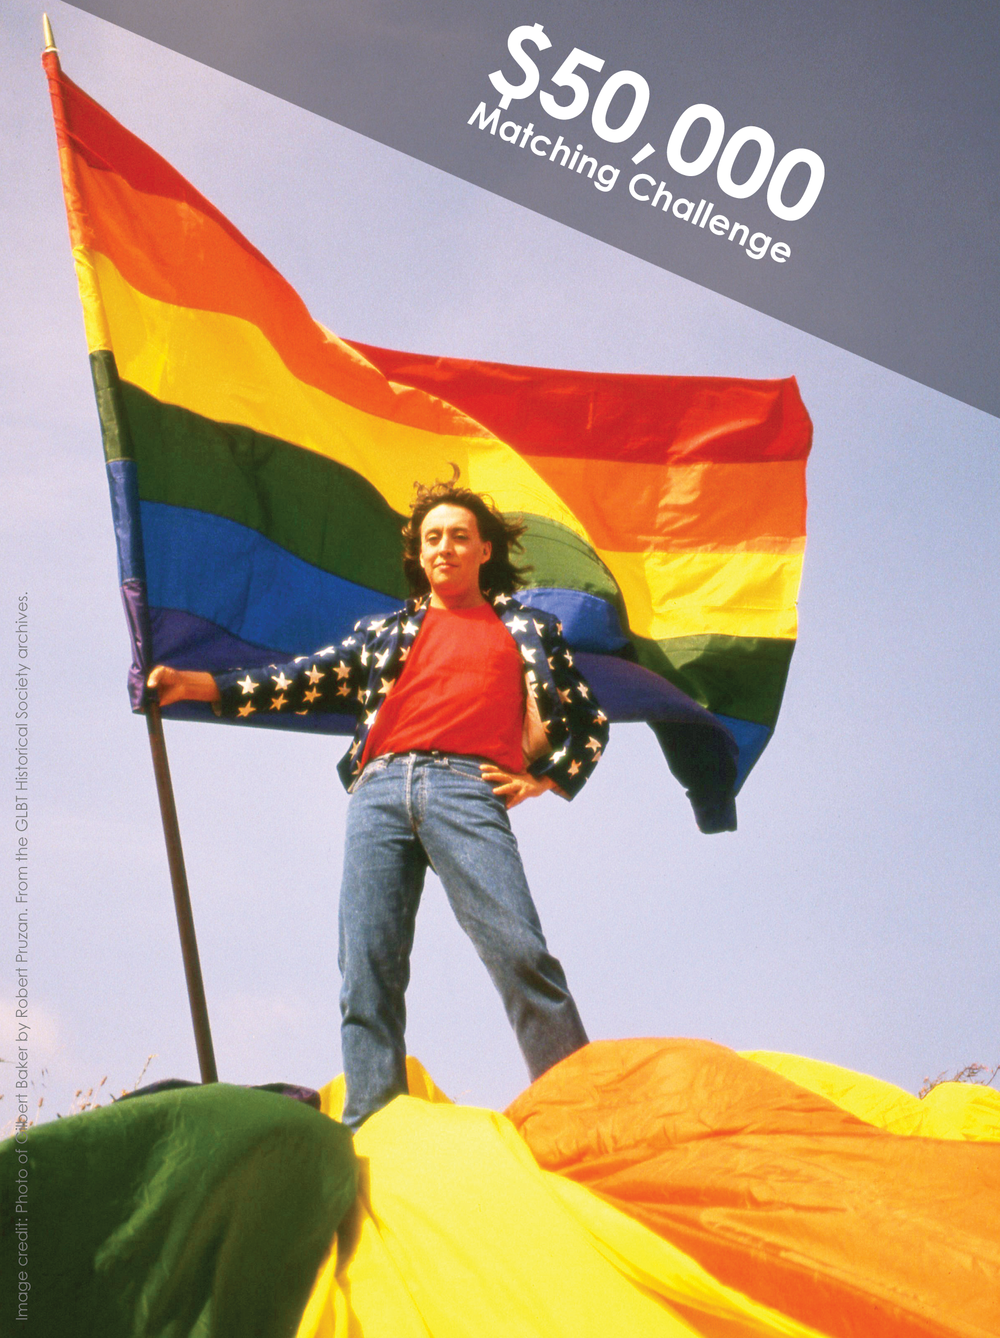 ANNUAL FUND: Vision 2020 - Vision 2020 is the GLBT Historical Society's Annual Fund. It sustains all of the activities required to accomplish our mission to collect, preserve, and make accessible to the public materials and knowledge that promote understand of LGBTQ history, culture, and arts in all their diversity.Keep LGBTQ History Alive and DONATE